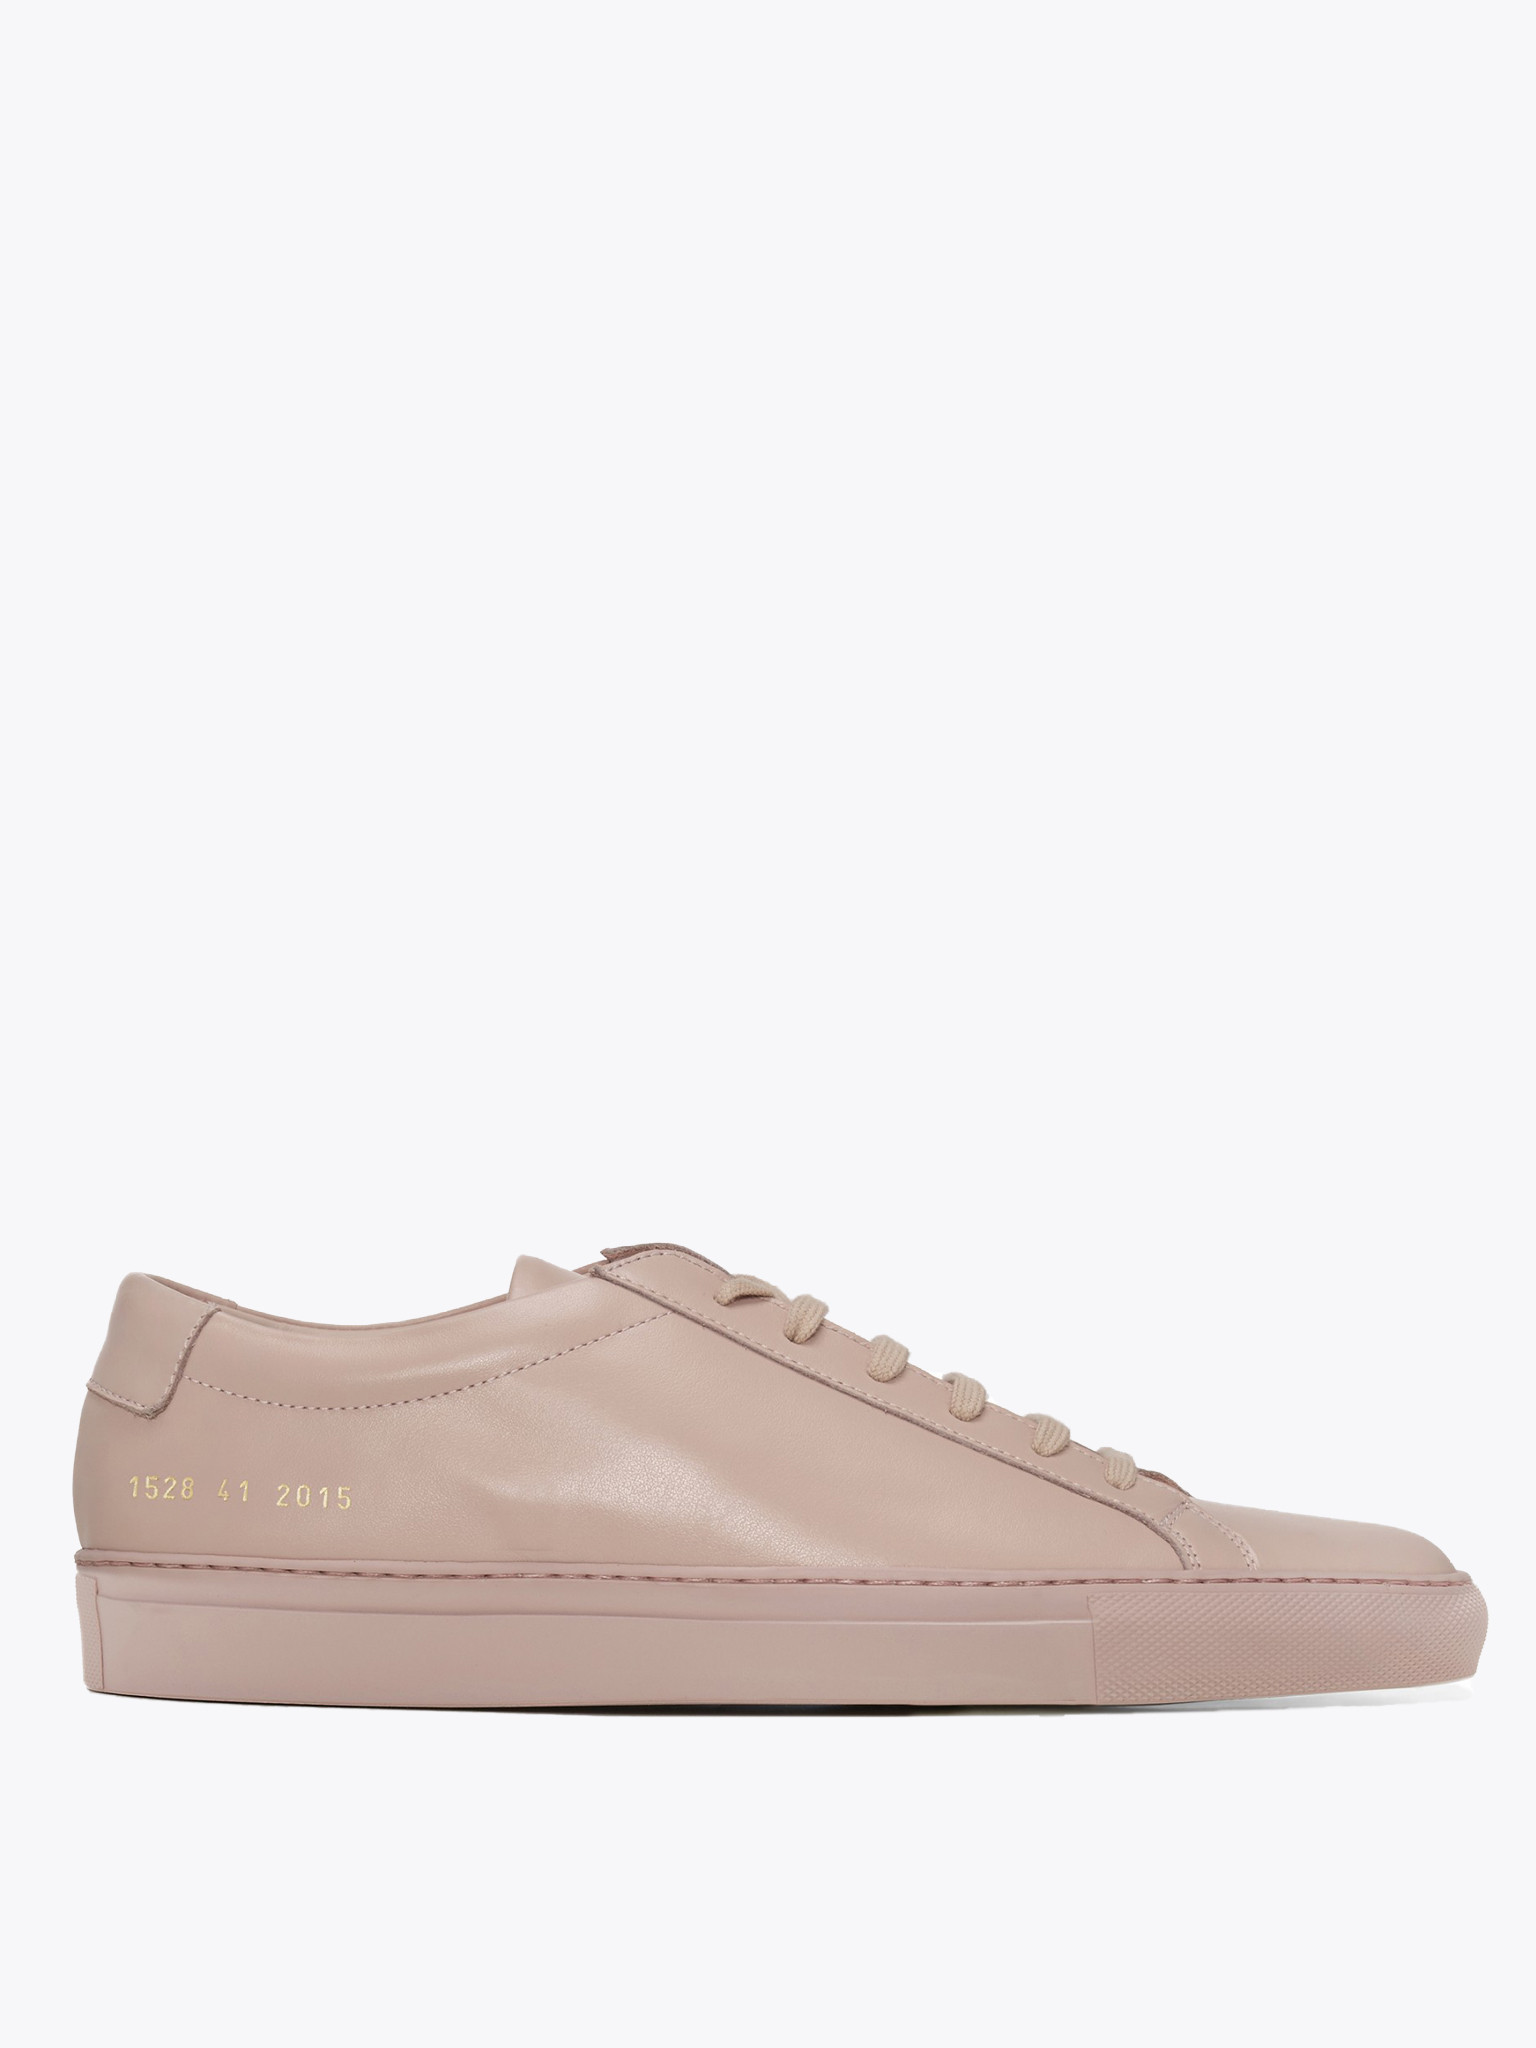 common projects original achilles low garmentory. Black Bedroom Furniture Sets. Home Design Ideas